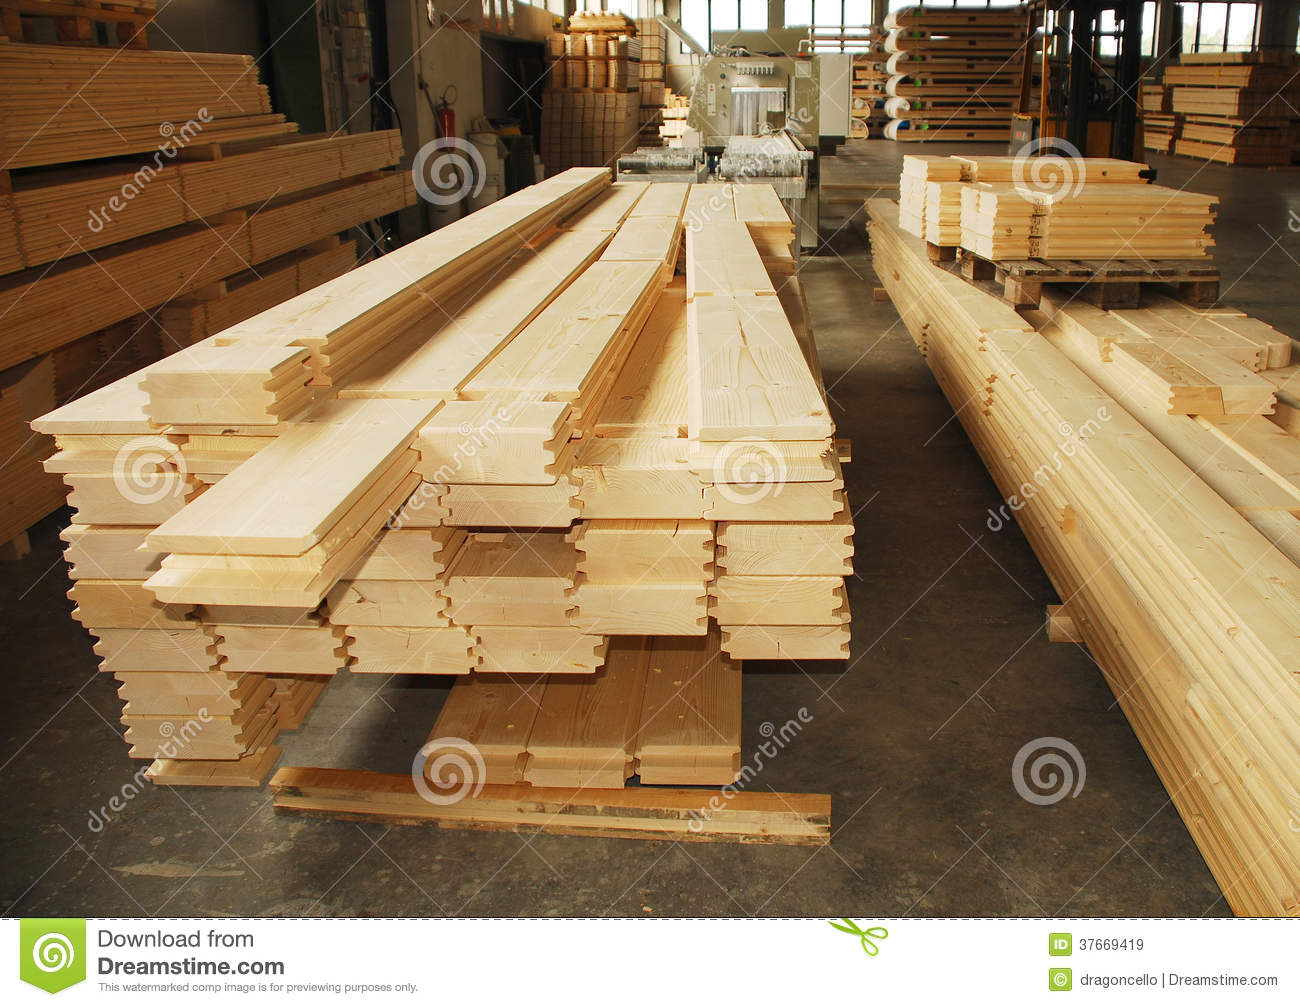 Wooden prefabricated house pieces in factory stock image - Fabricas de madera ...